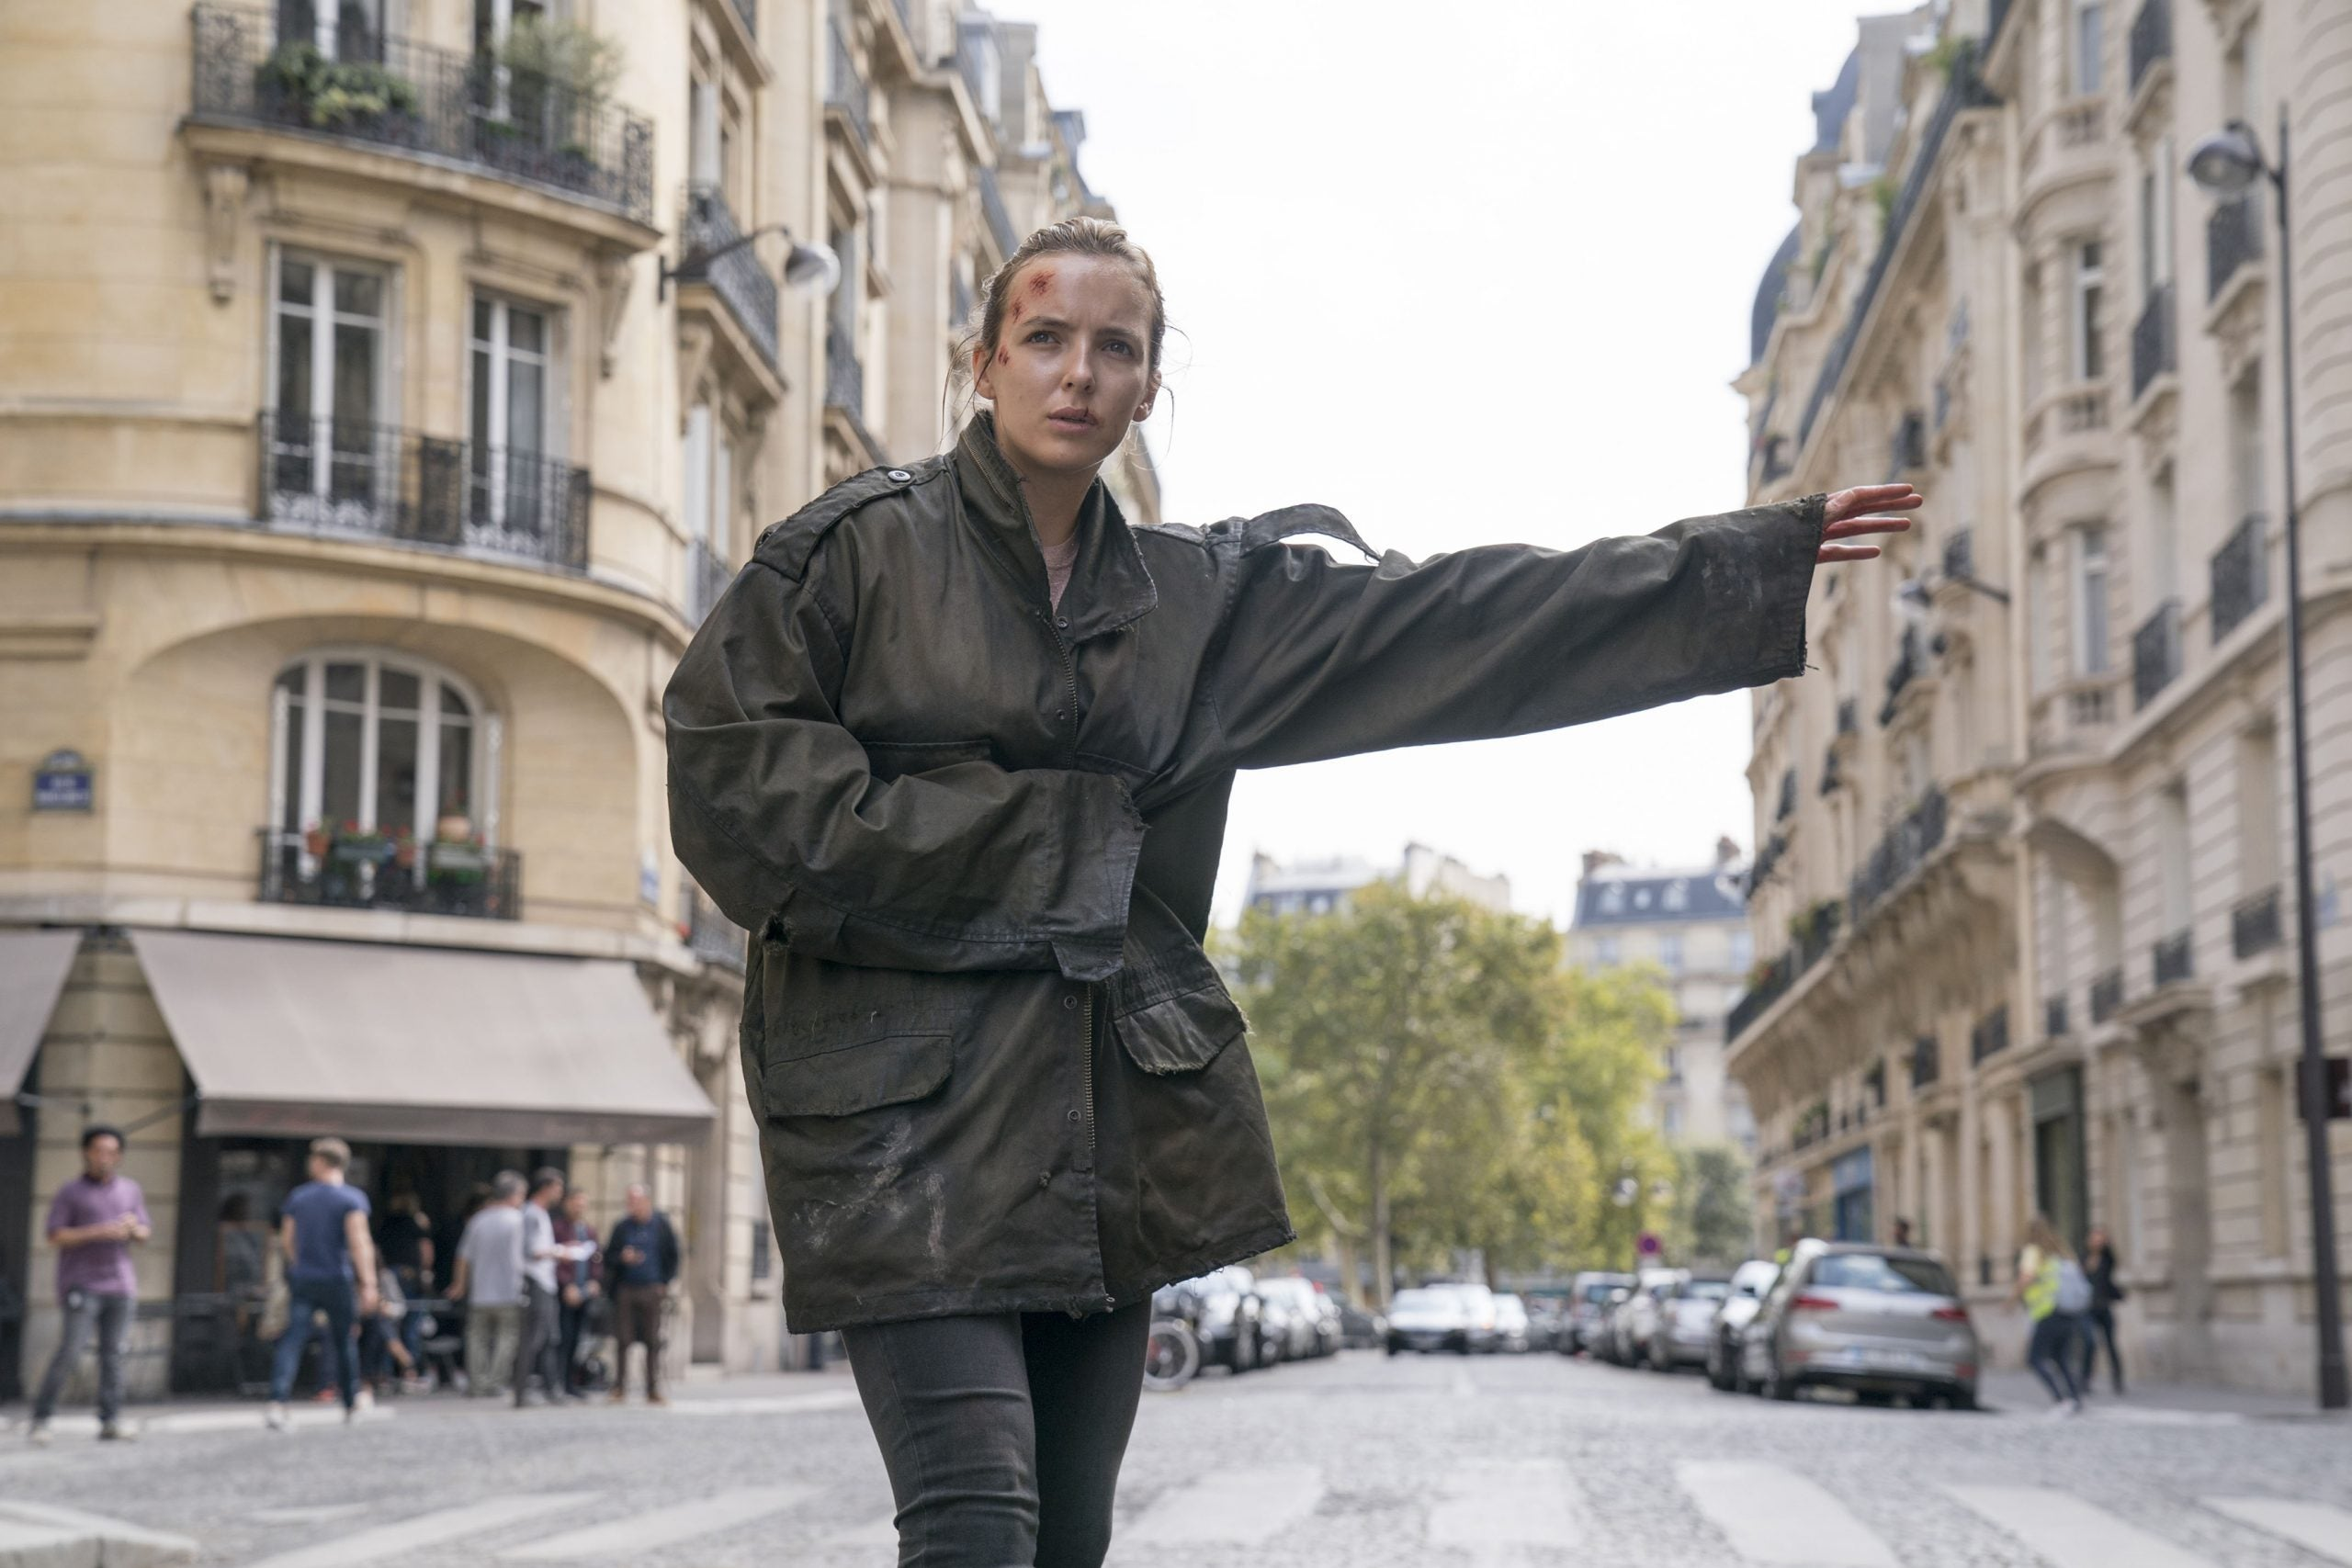 In its portrayal of men and women, Killing Eve echoes life – with added weapons